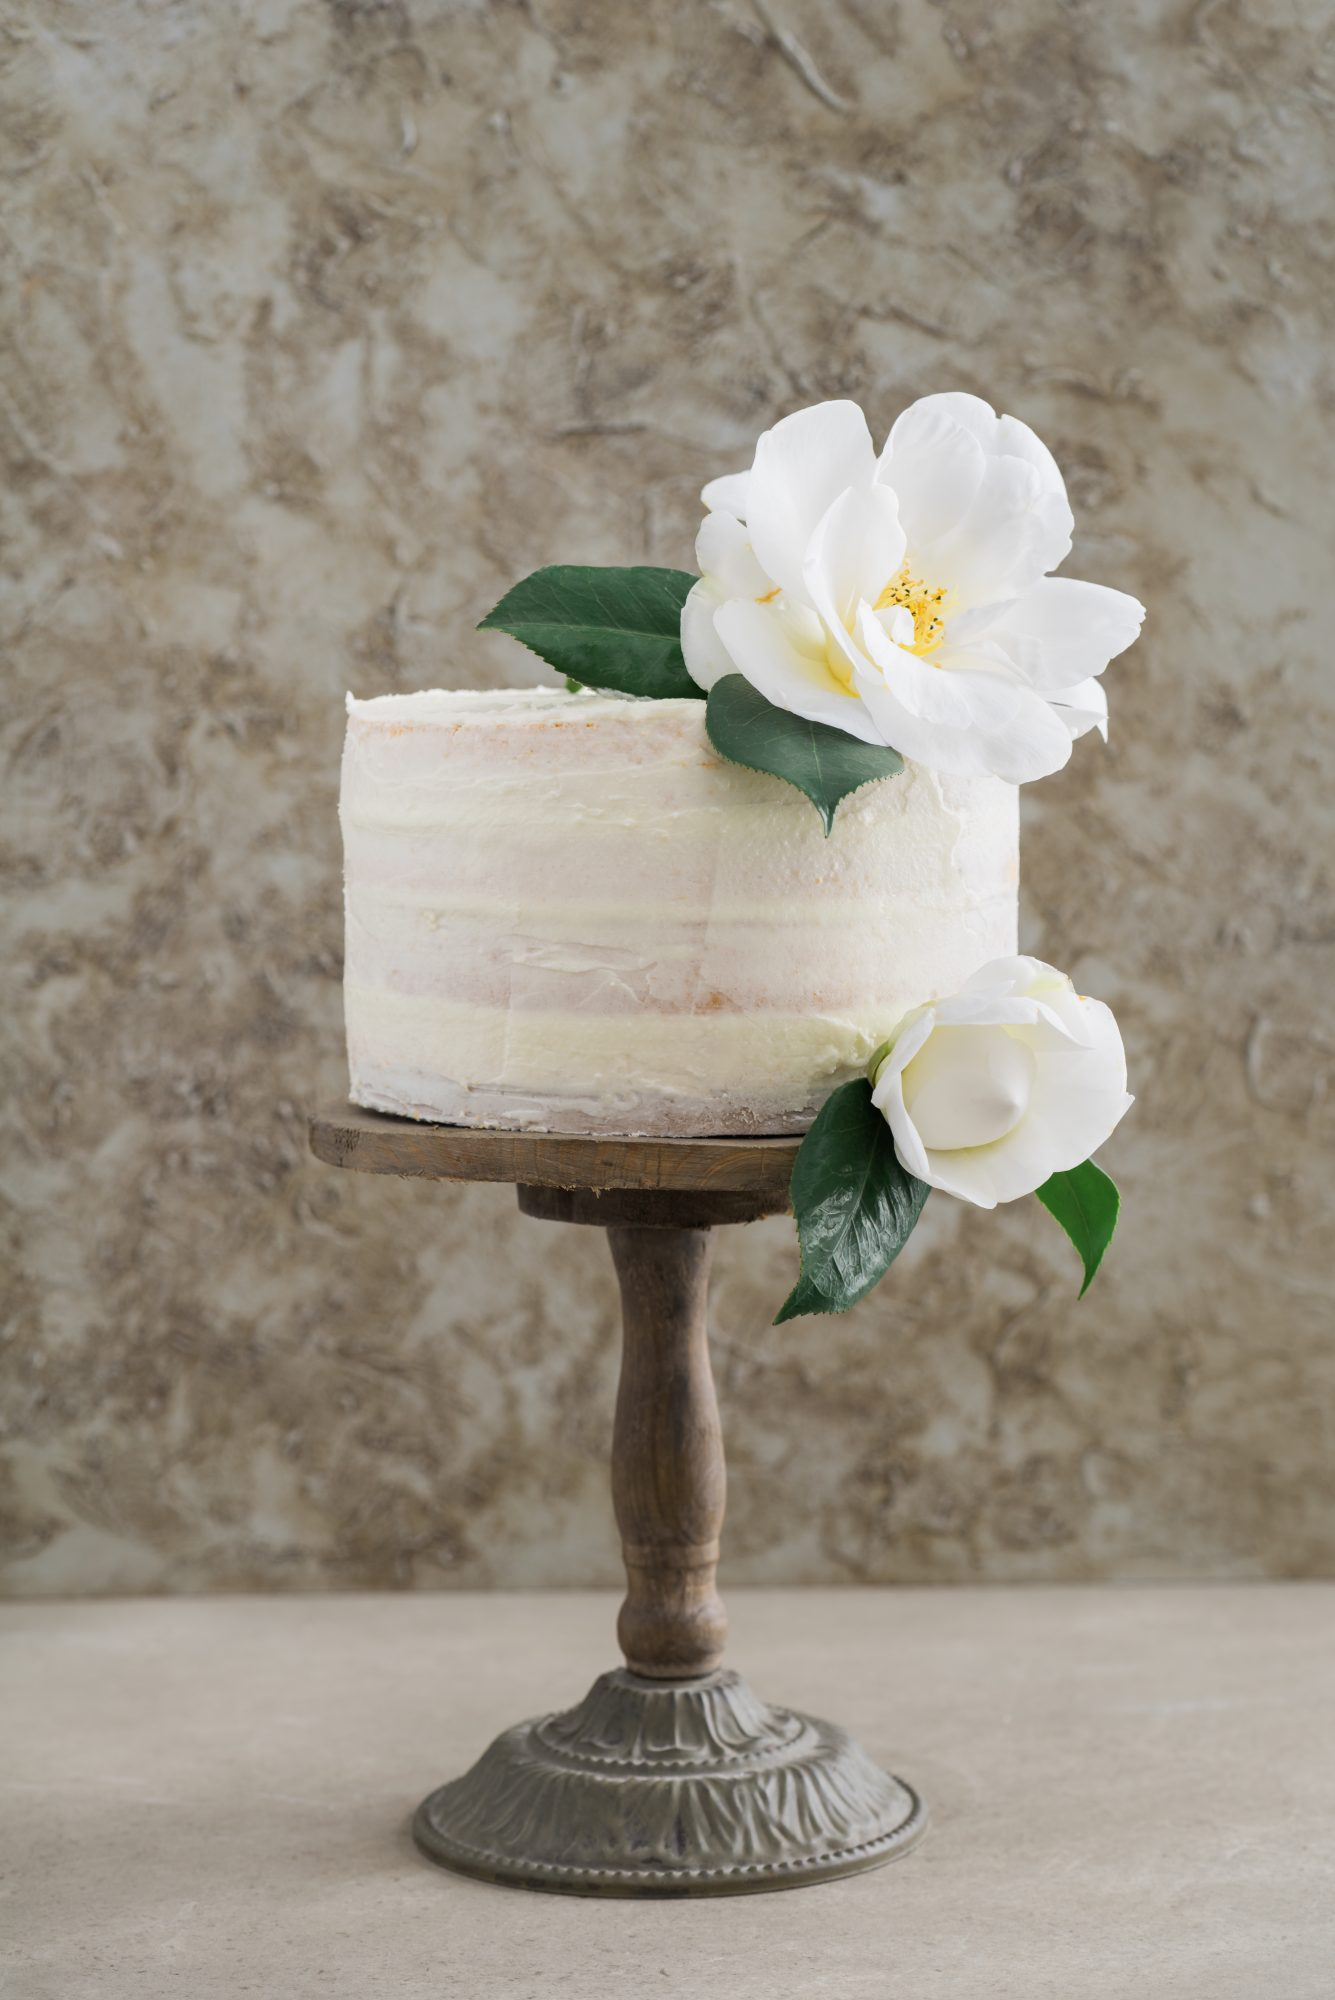 Simple white wedding cake with flowers